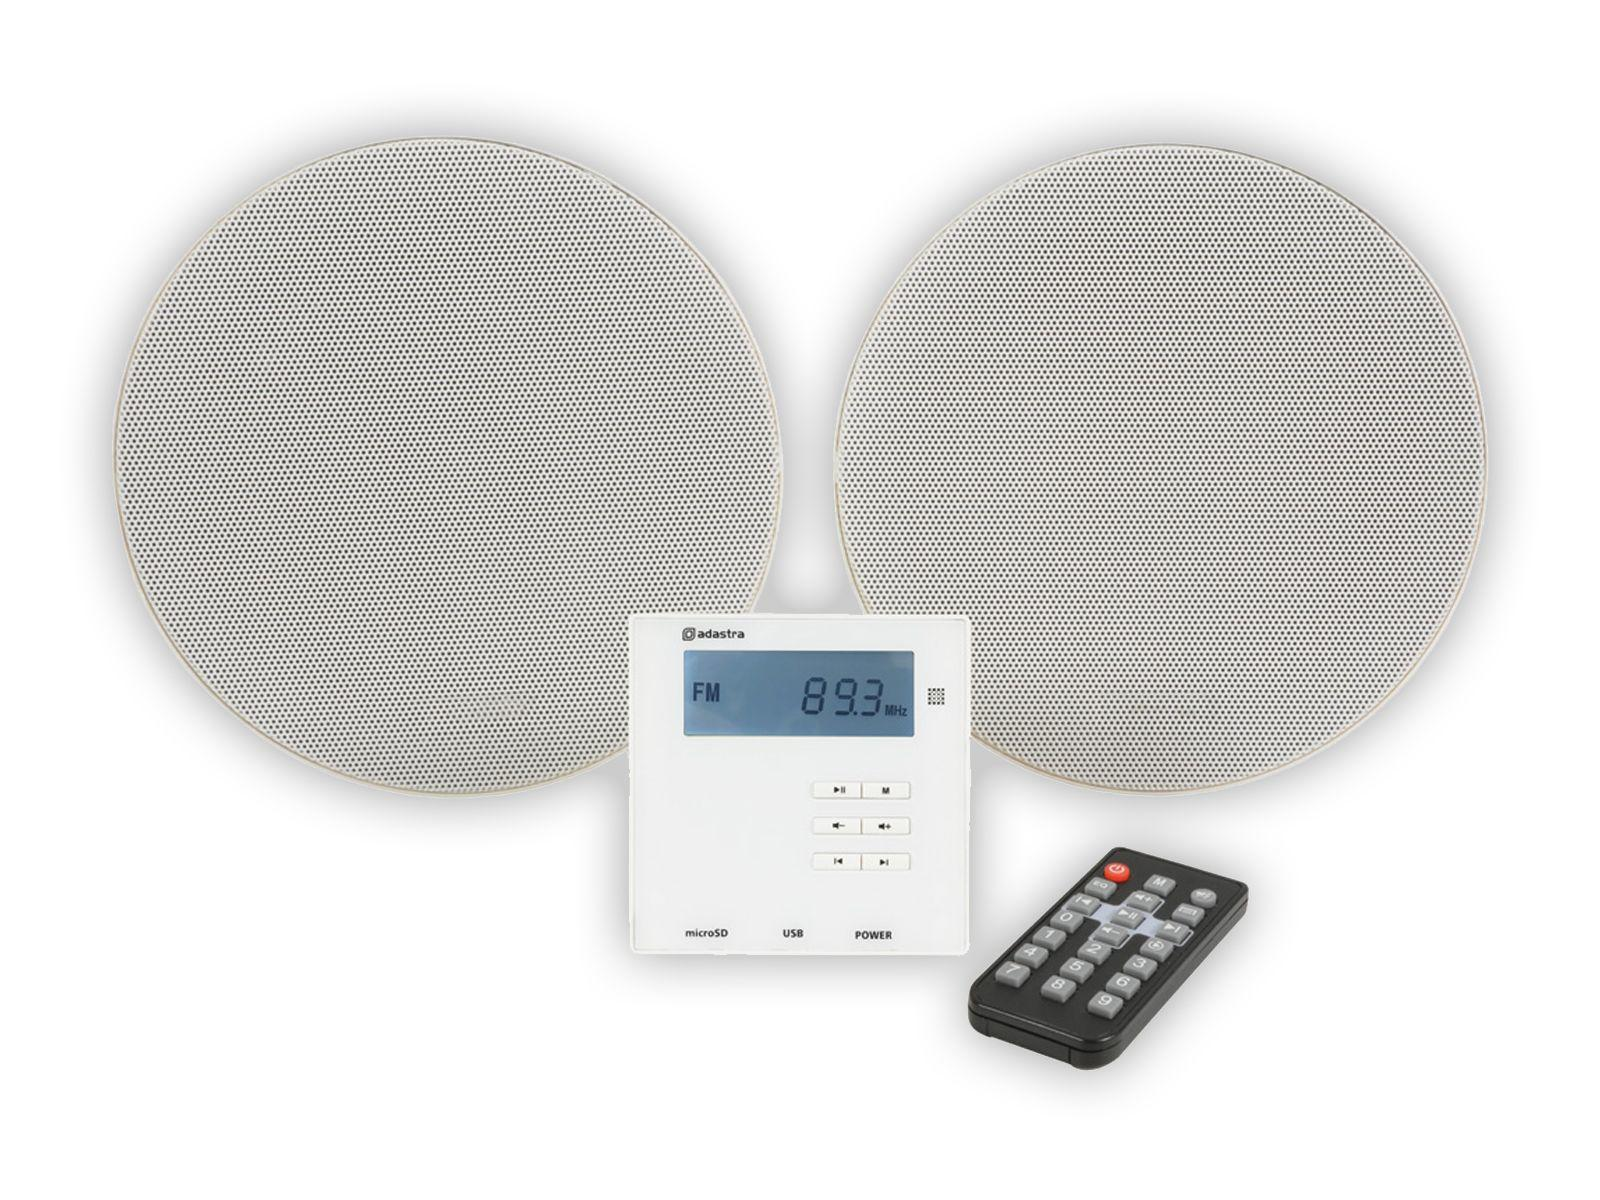 Pair of white ceiling speakers with in wall control panel and remote